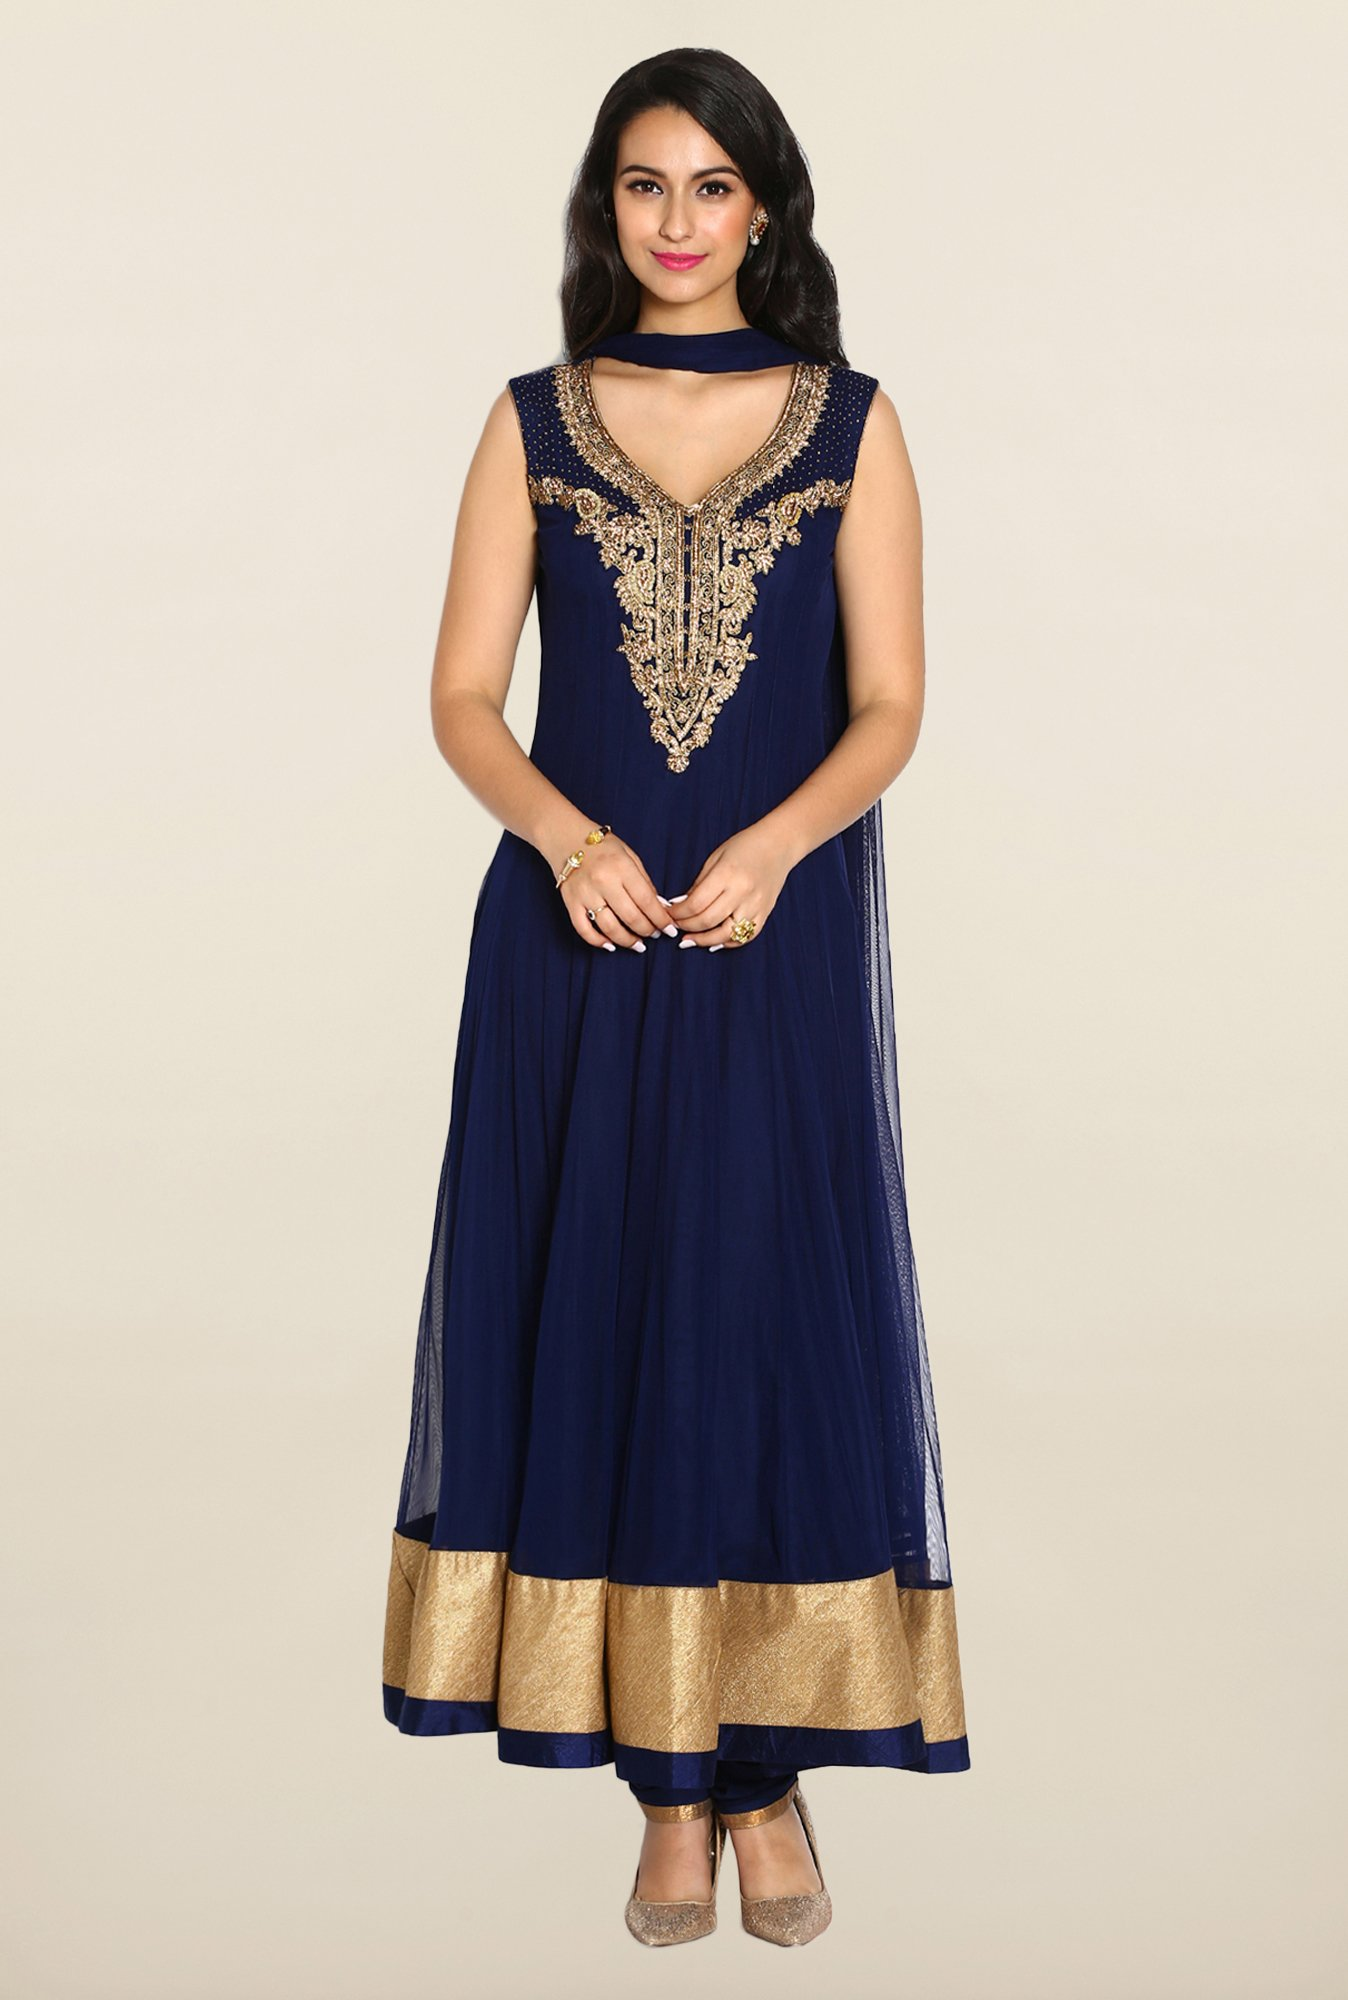 Soch Navy & Gold Anarkali Chudidhar Suit Set